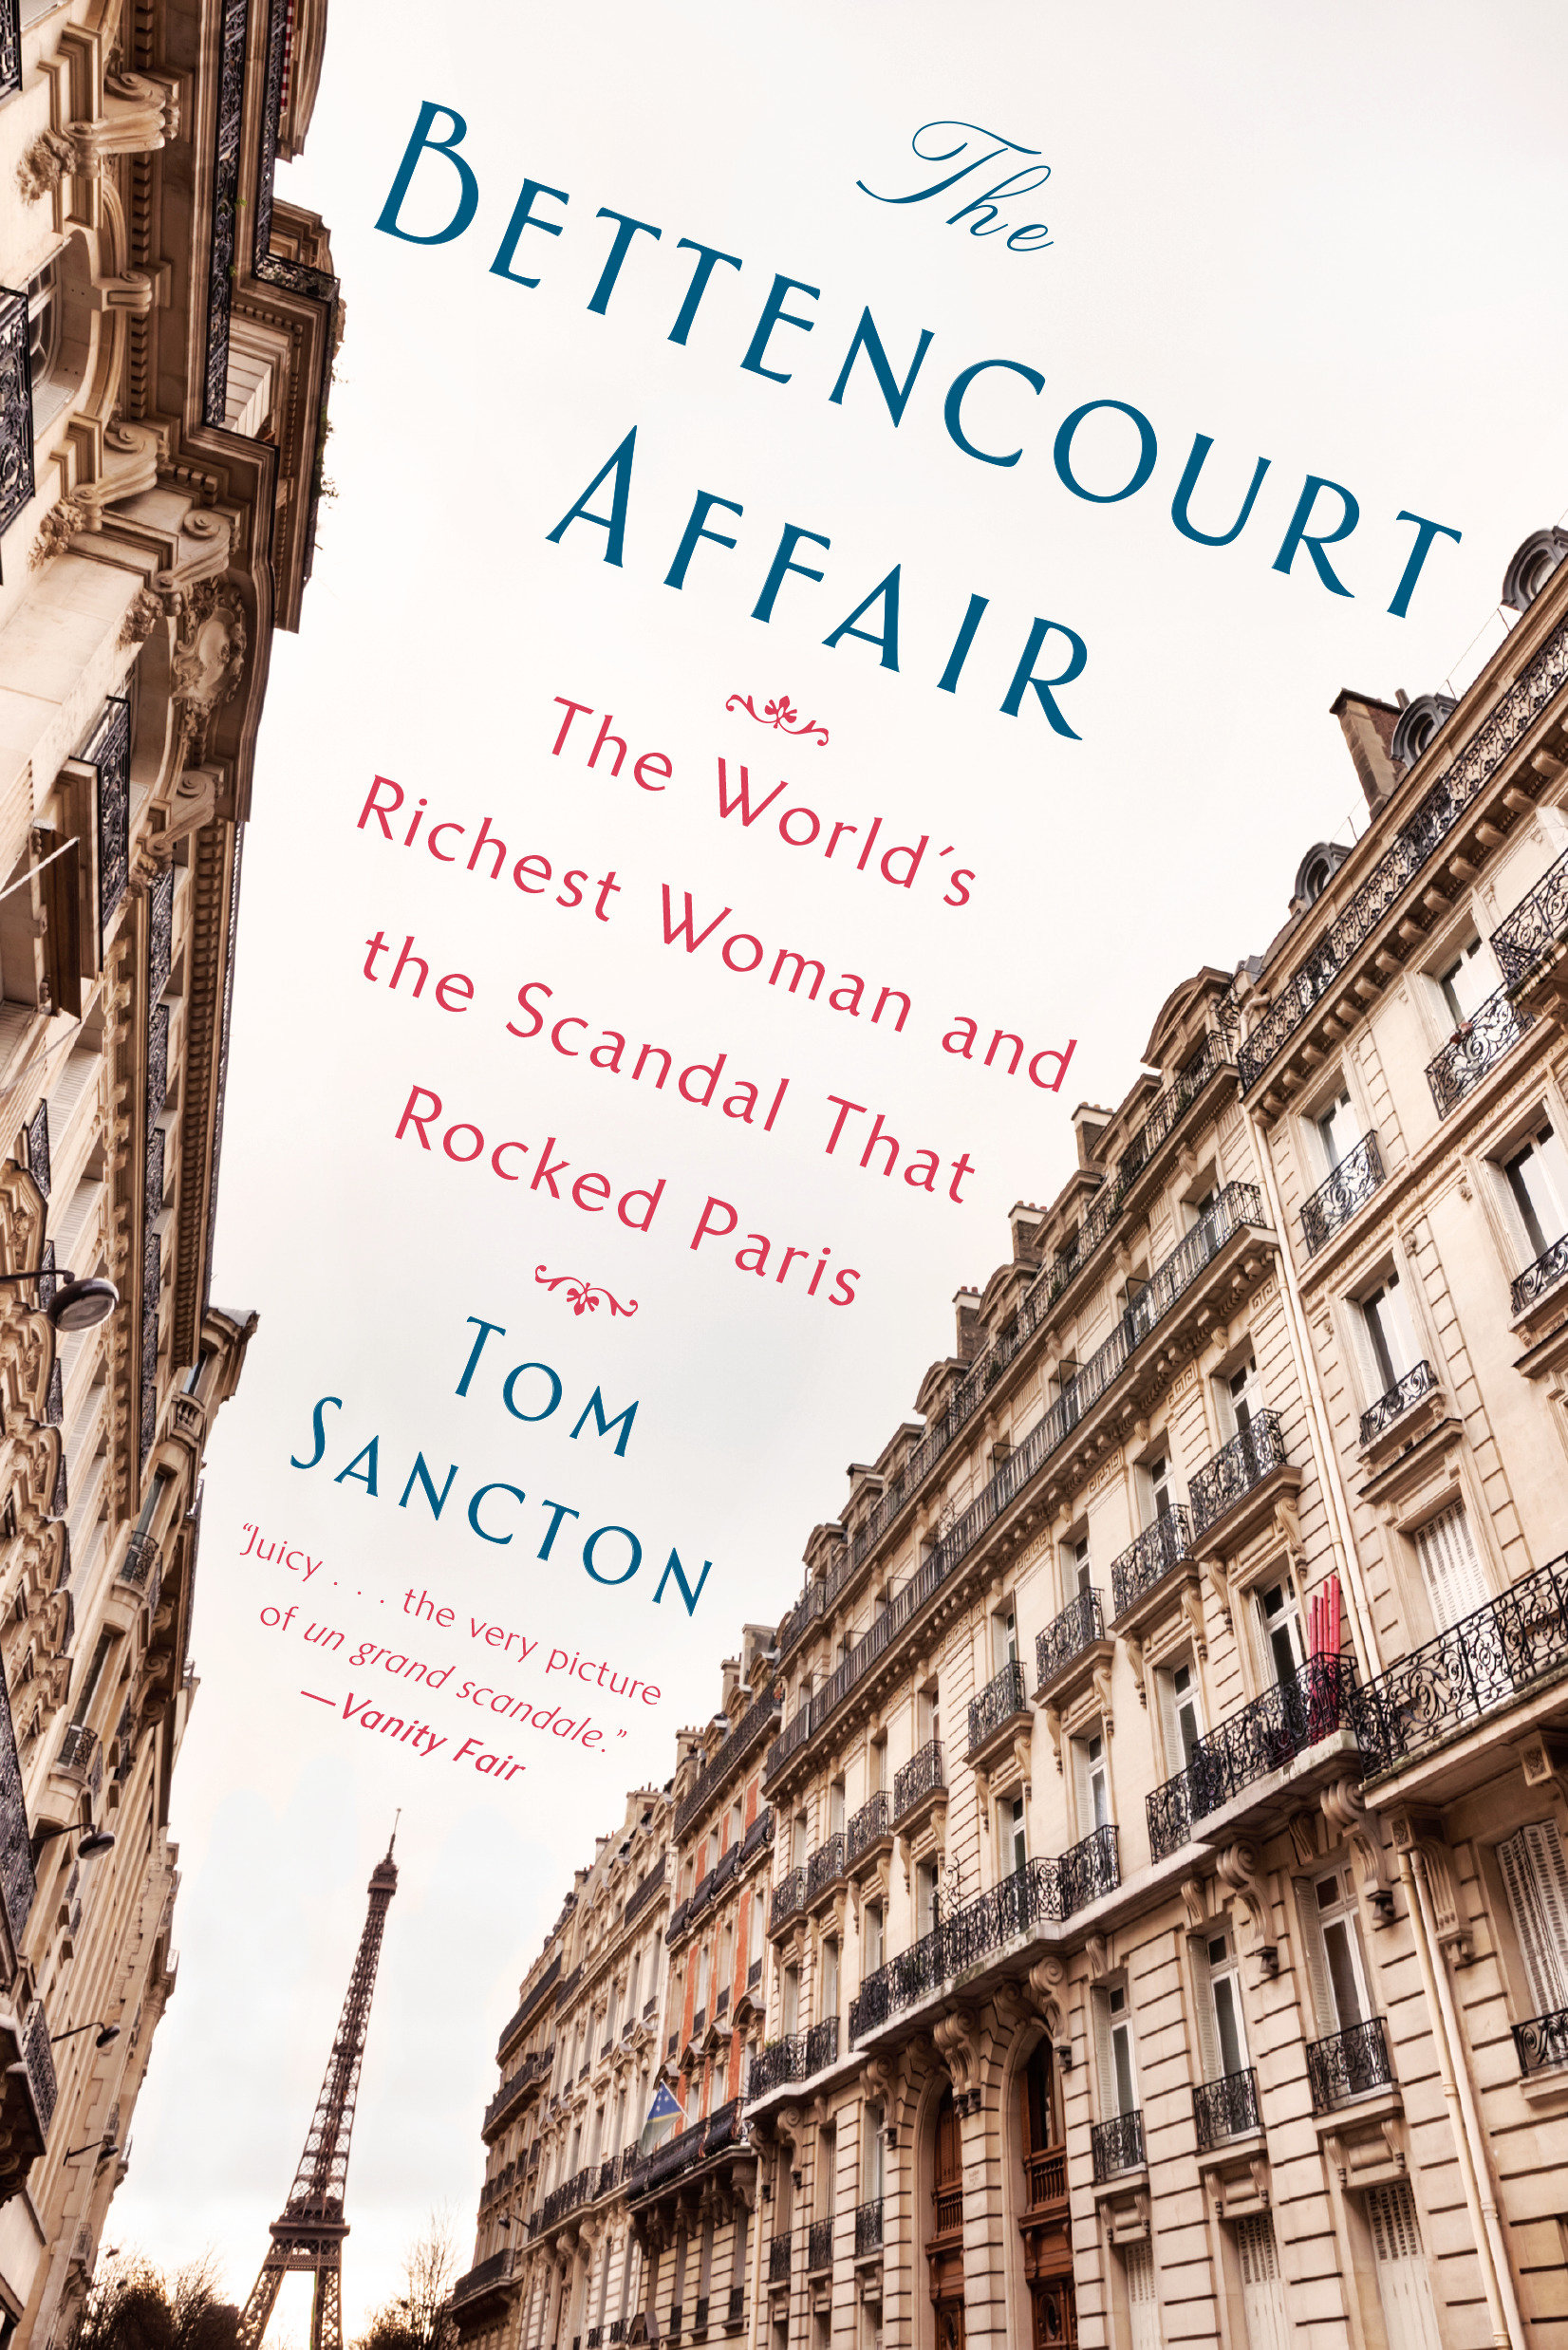 The Bettencourt Affair The World's Richest Woman and the Scandal That Rocked Paris